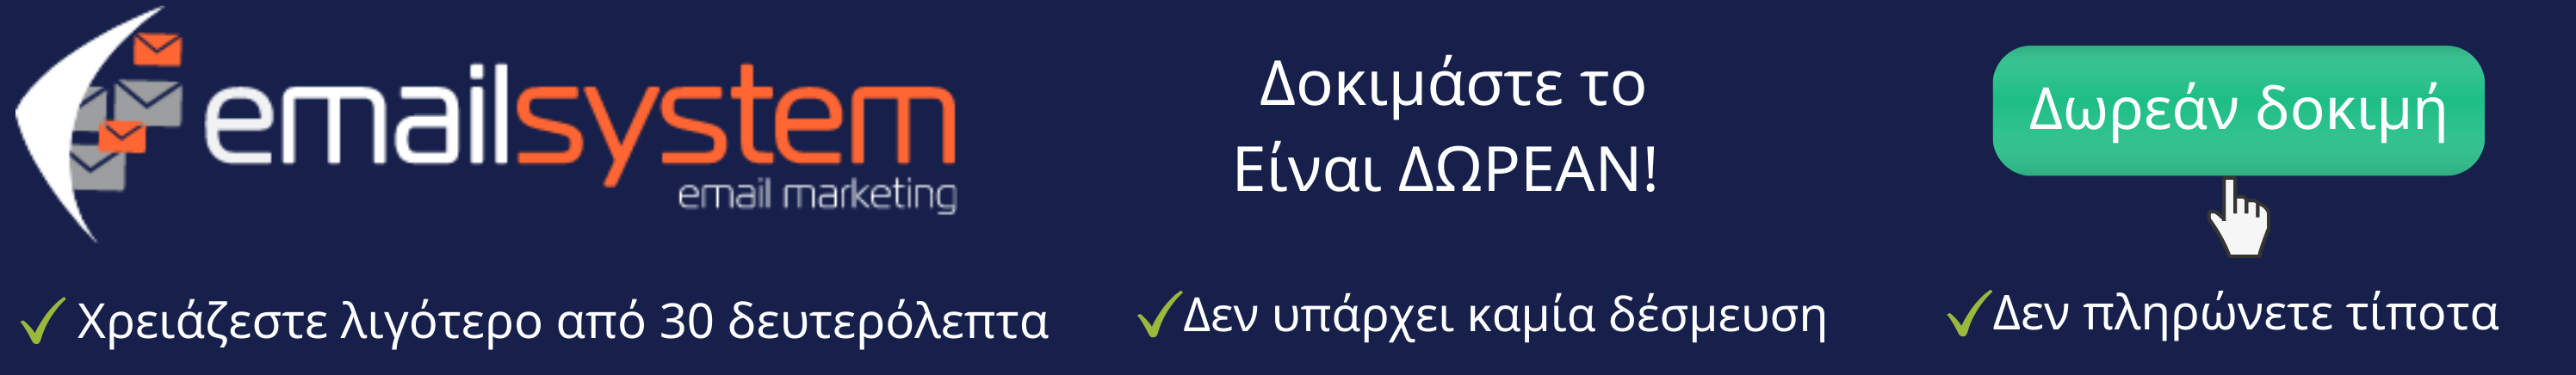 Up-selling στο Email marketing - email system